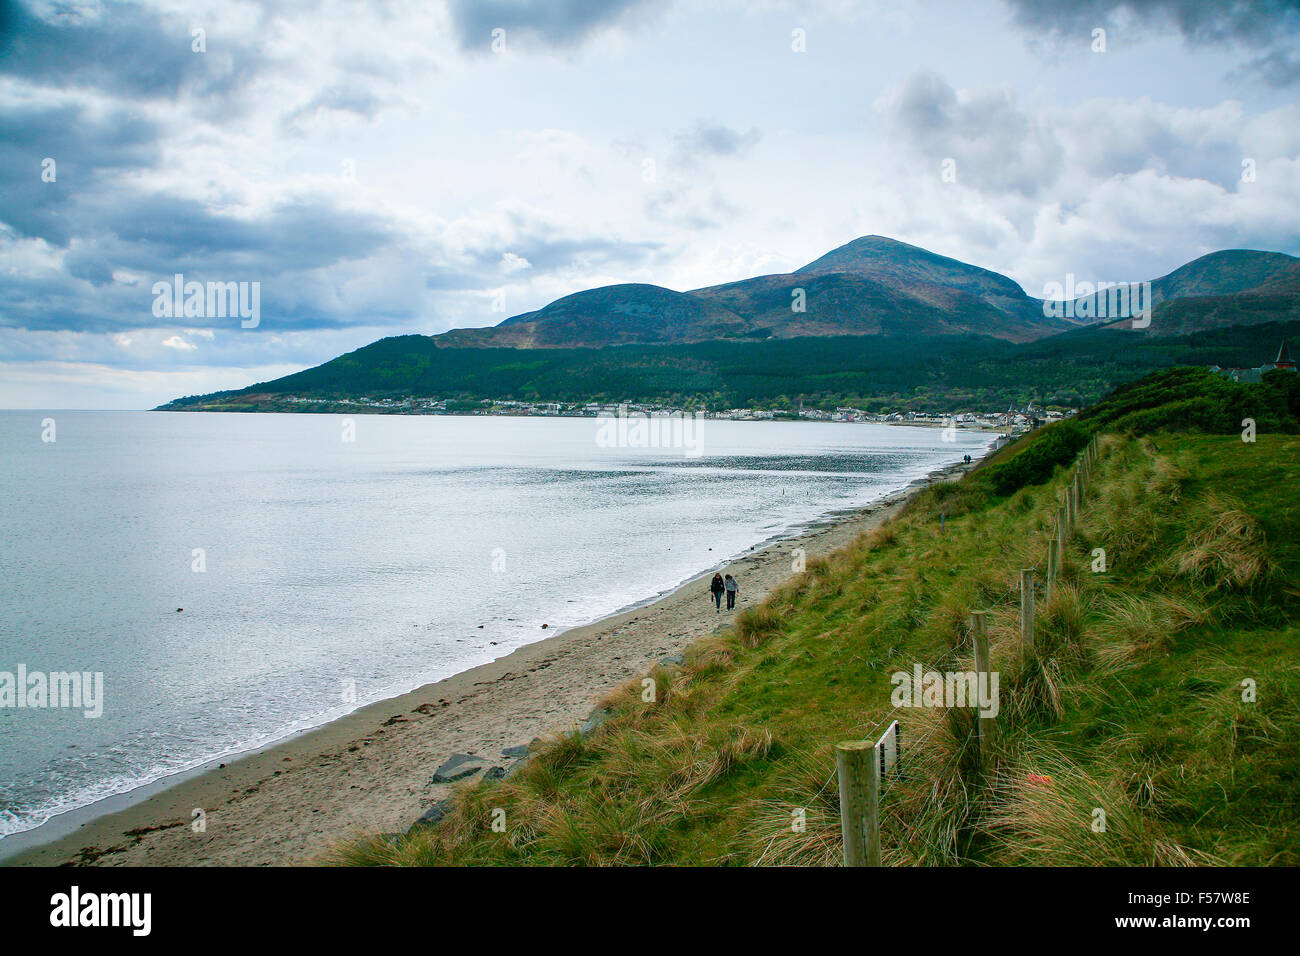 Mountains of Mourne, County Down and Northern Ireland coast - Stock Image